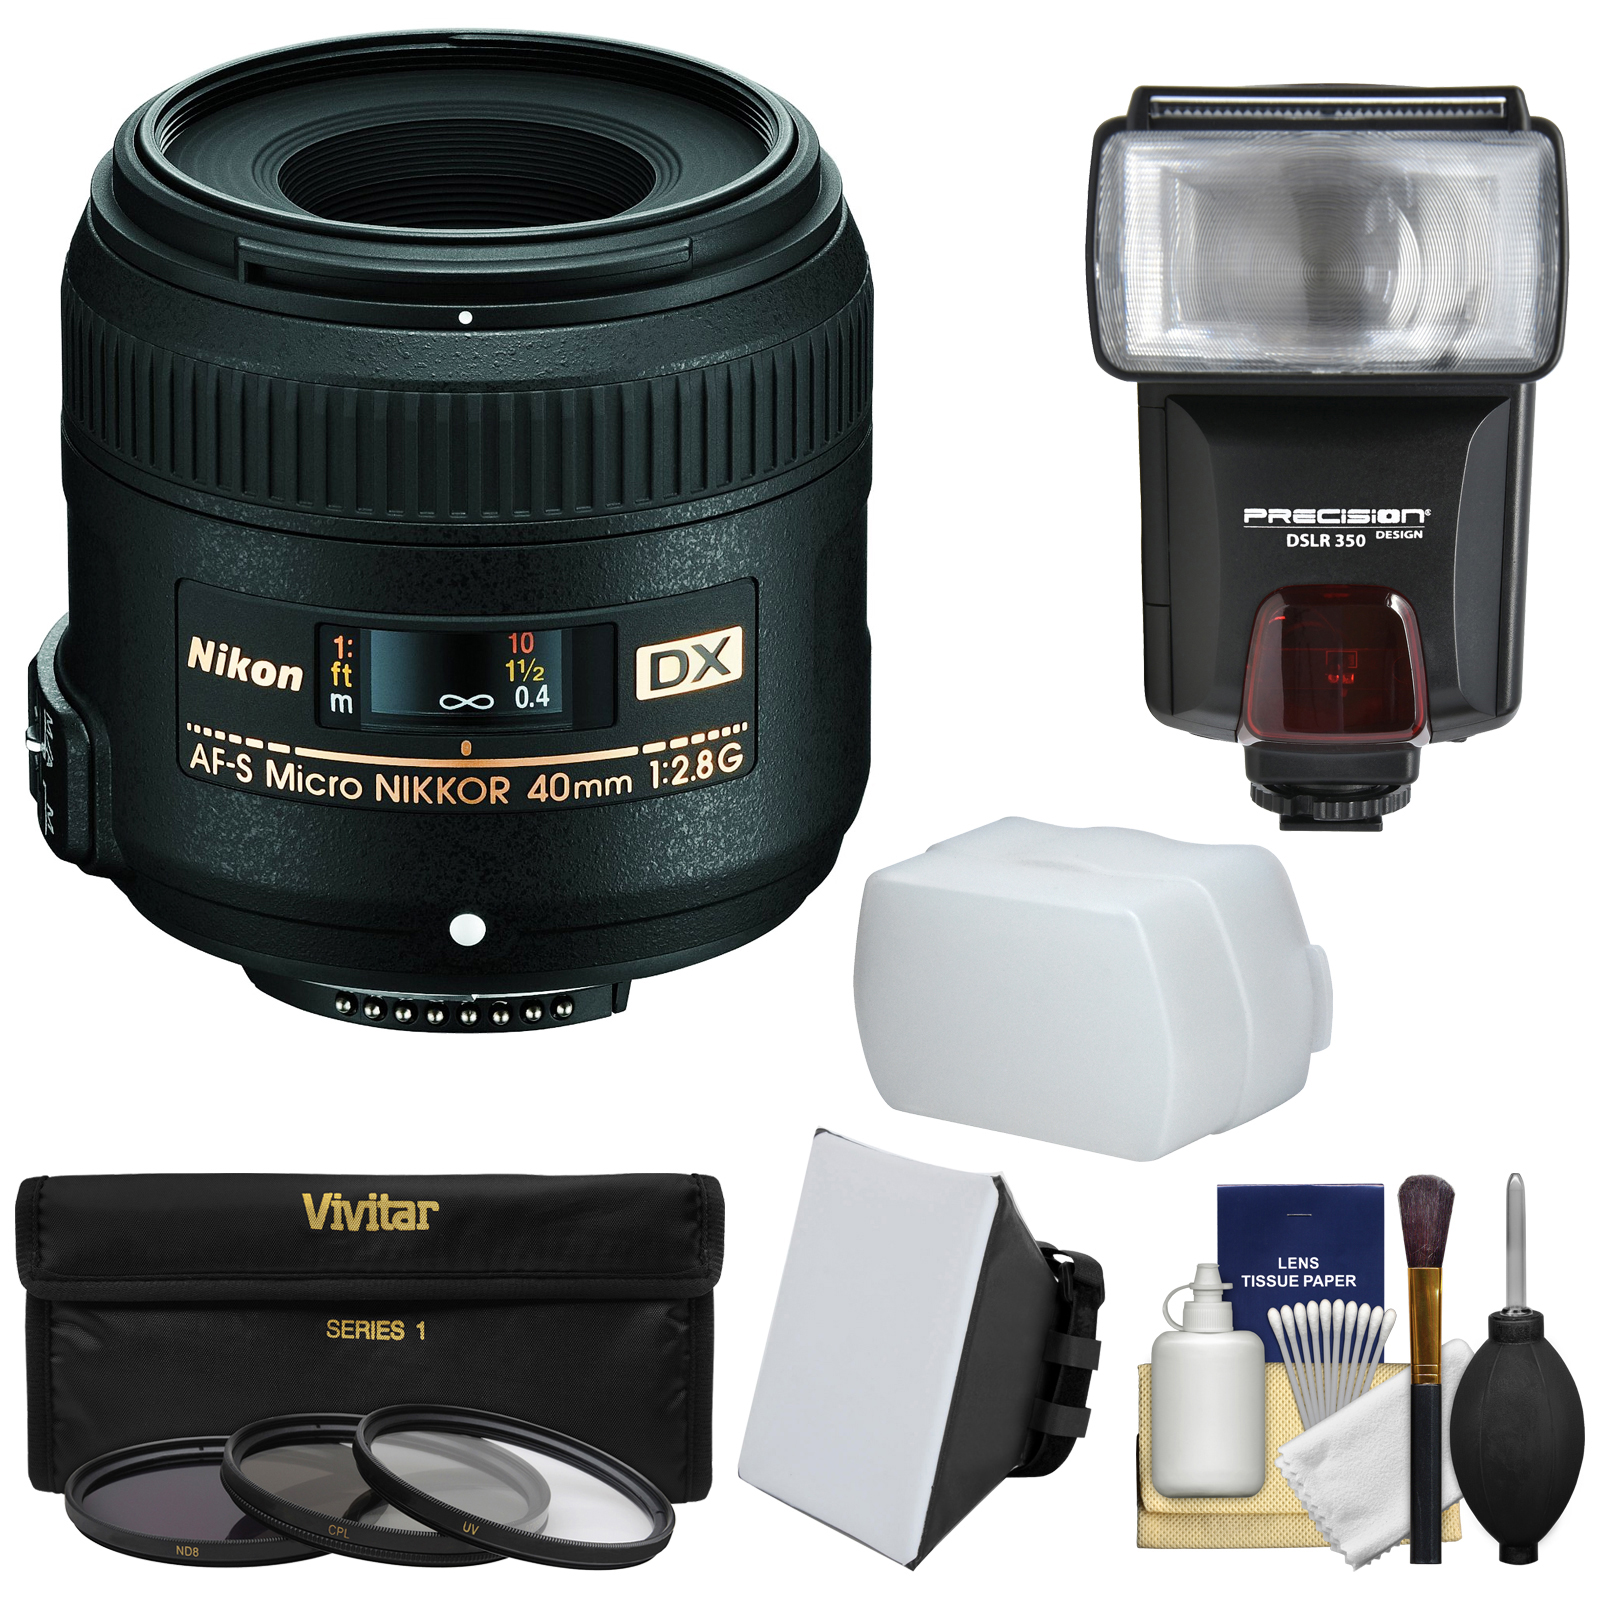 Nikon 40mm f/2.8 G DX AF-S Micro-Nikkor Lens with 3 Filters + Flash & 2 Diffusers + Kit for D3200, D3300, D5300, D5500, D7100, D7200 Cameras